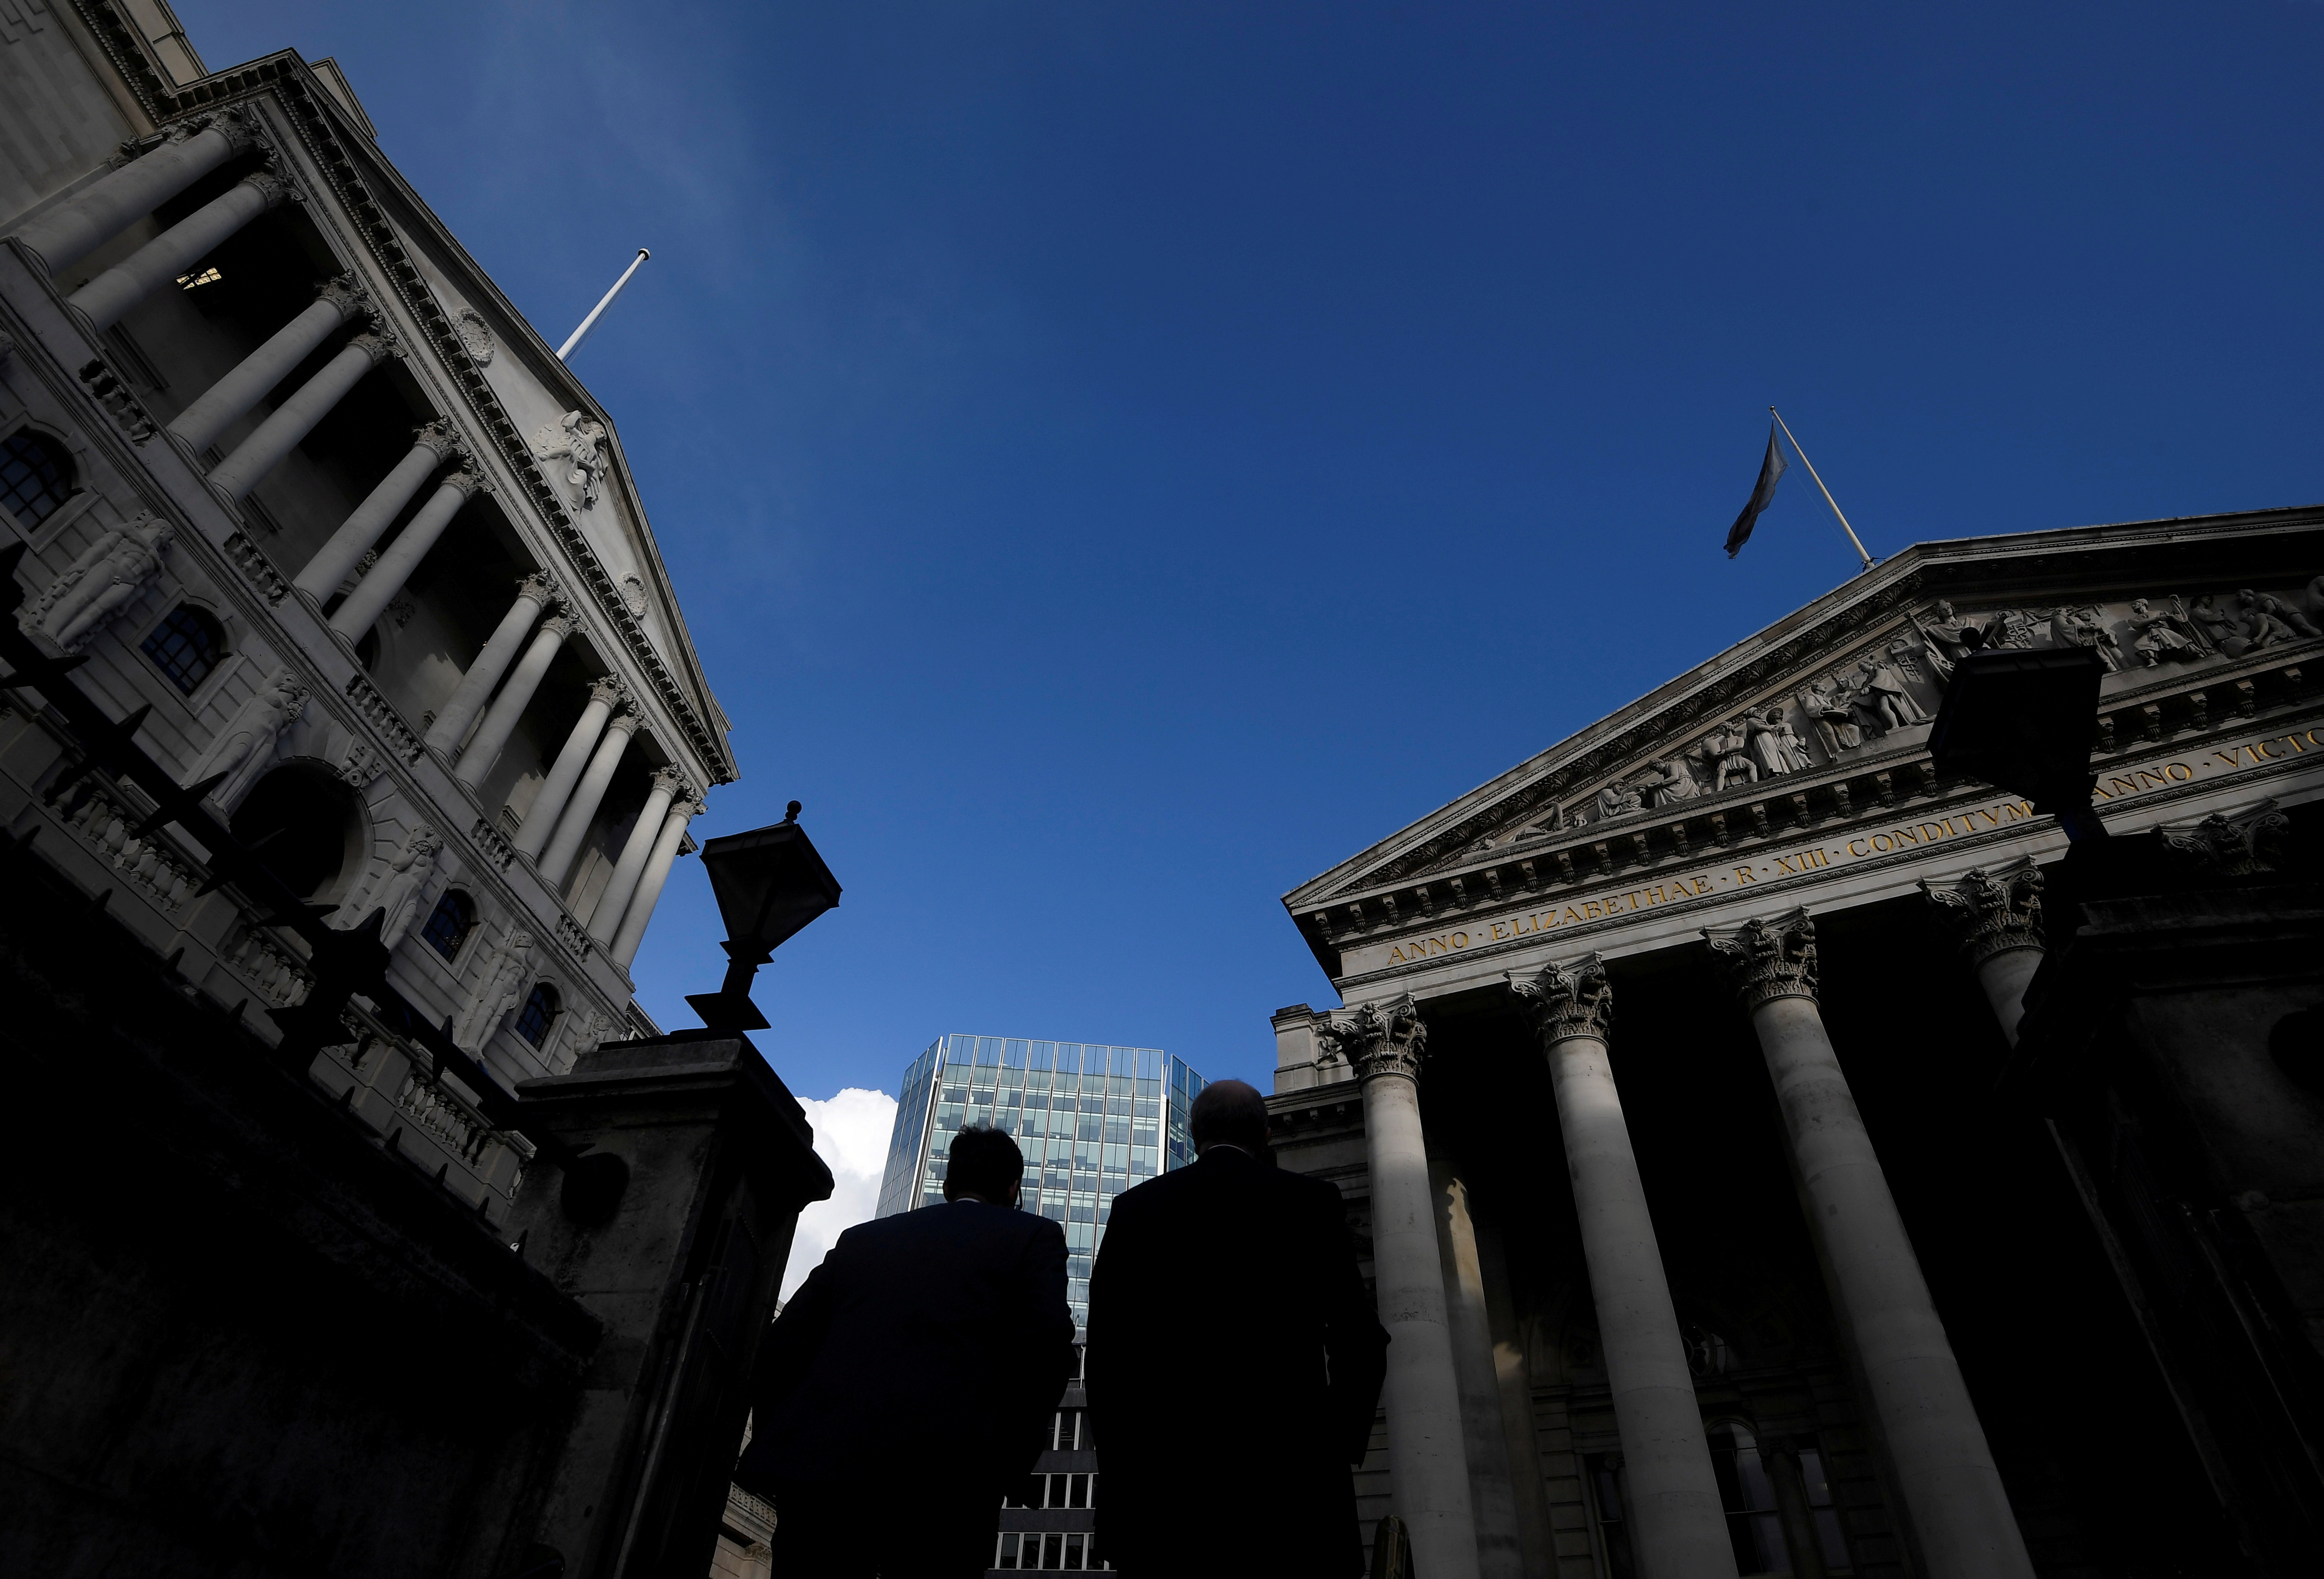 Workers emerge from Bank underground station with the Bank of England (L) and Royal Exchange building (R) seen in the City of London financial district, London, Britain, January 25, 2018. Picture taken January 25, 2018.   REUTERS/Toby Melville/File Photo